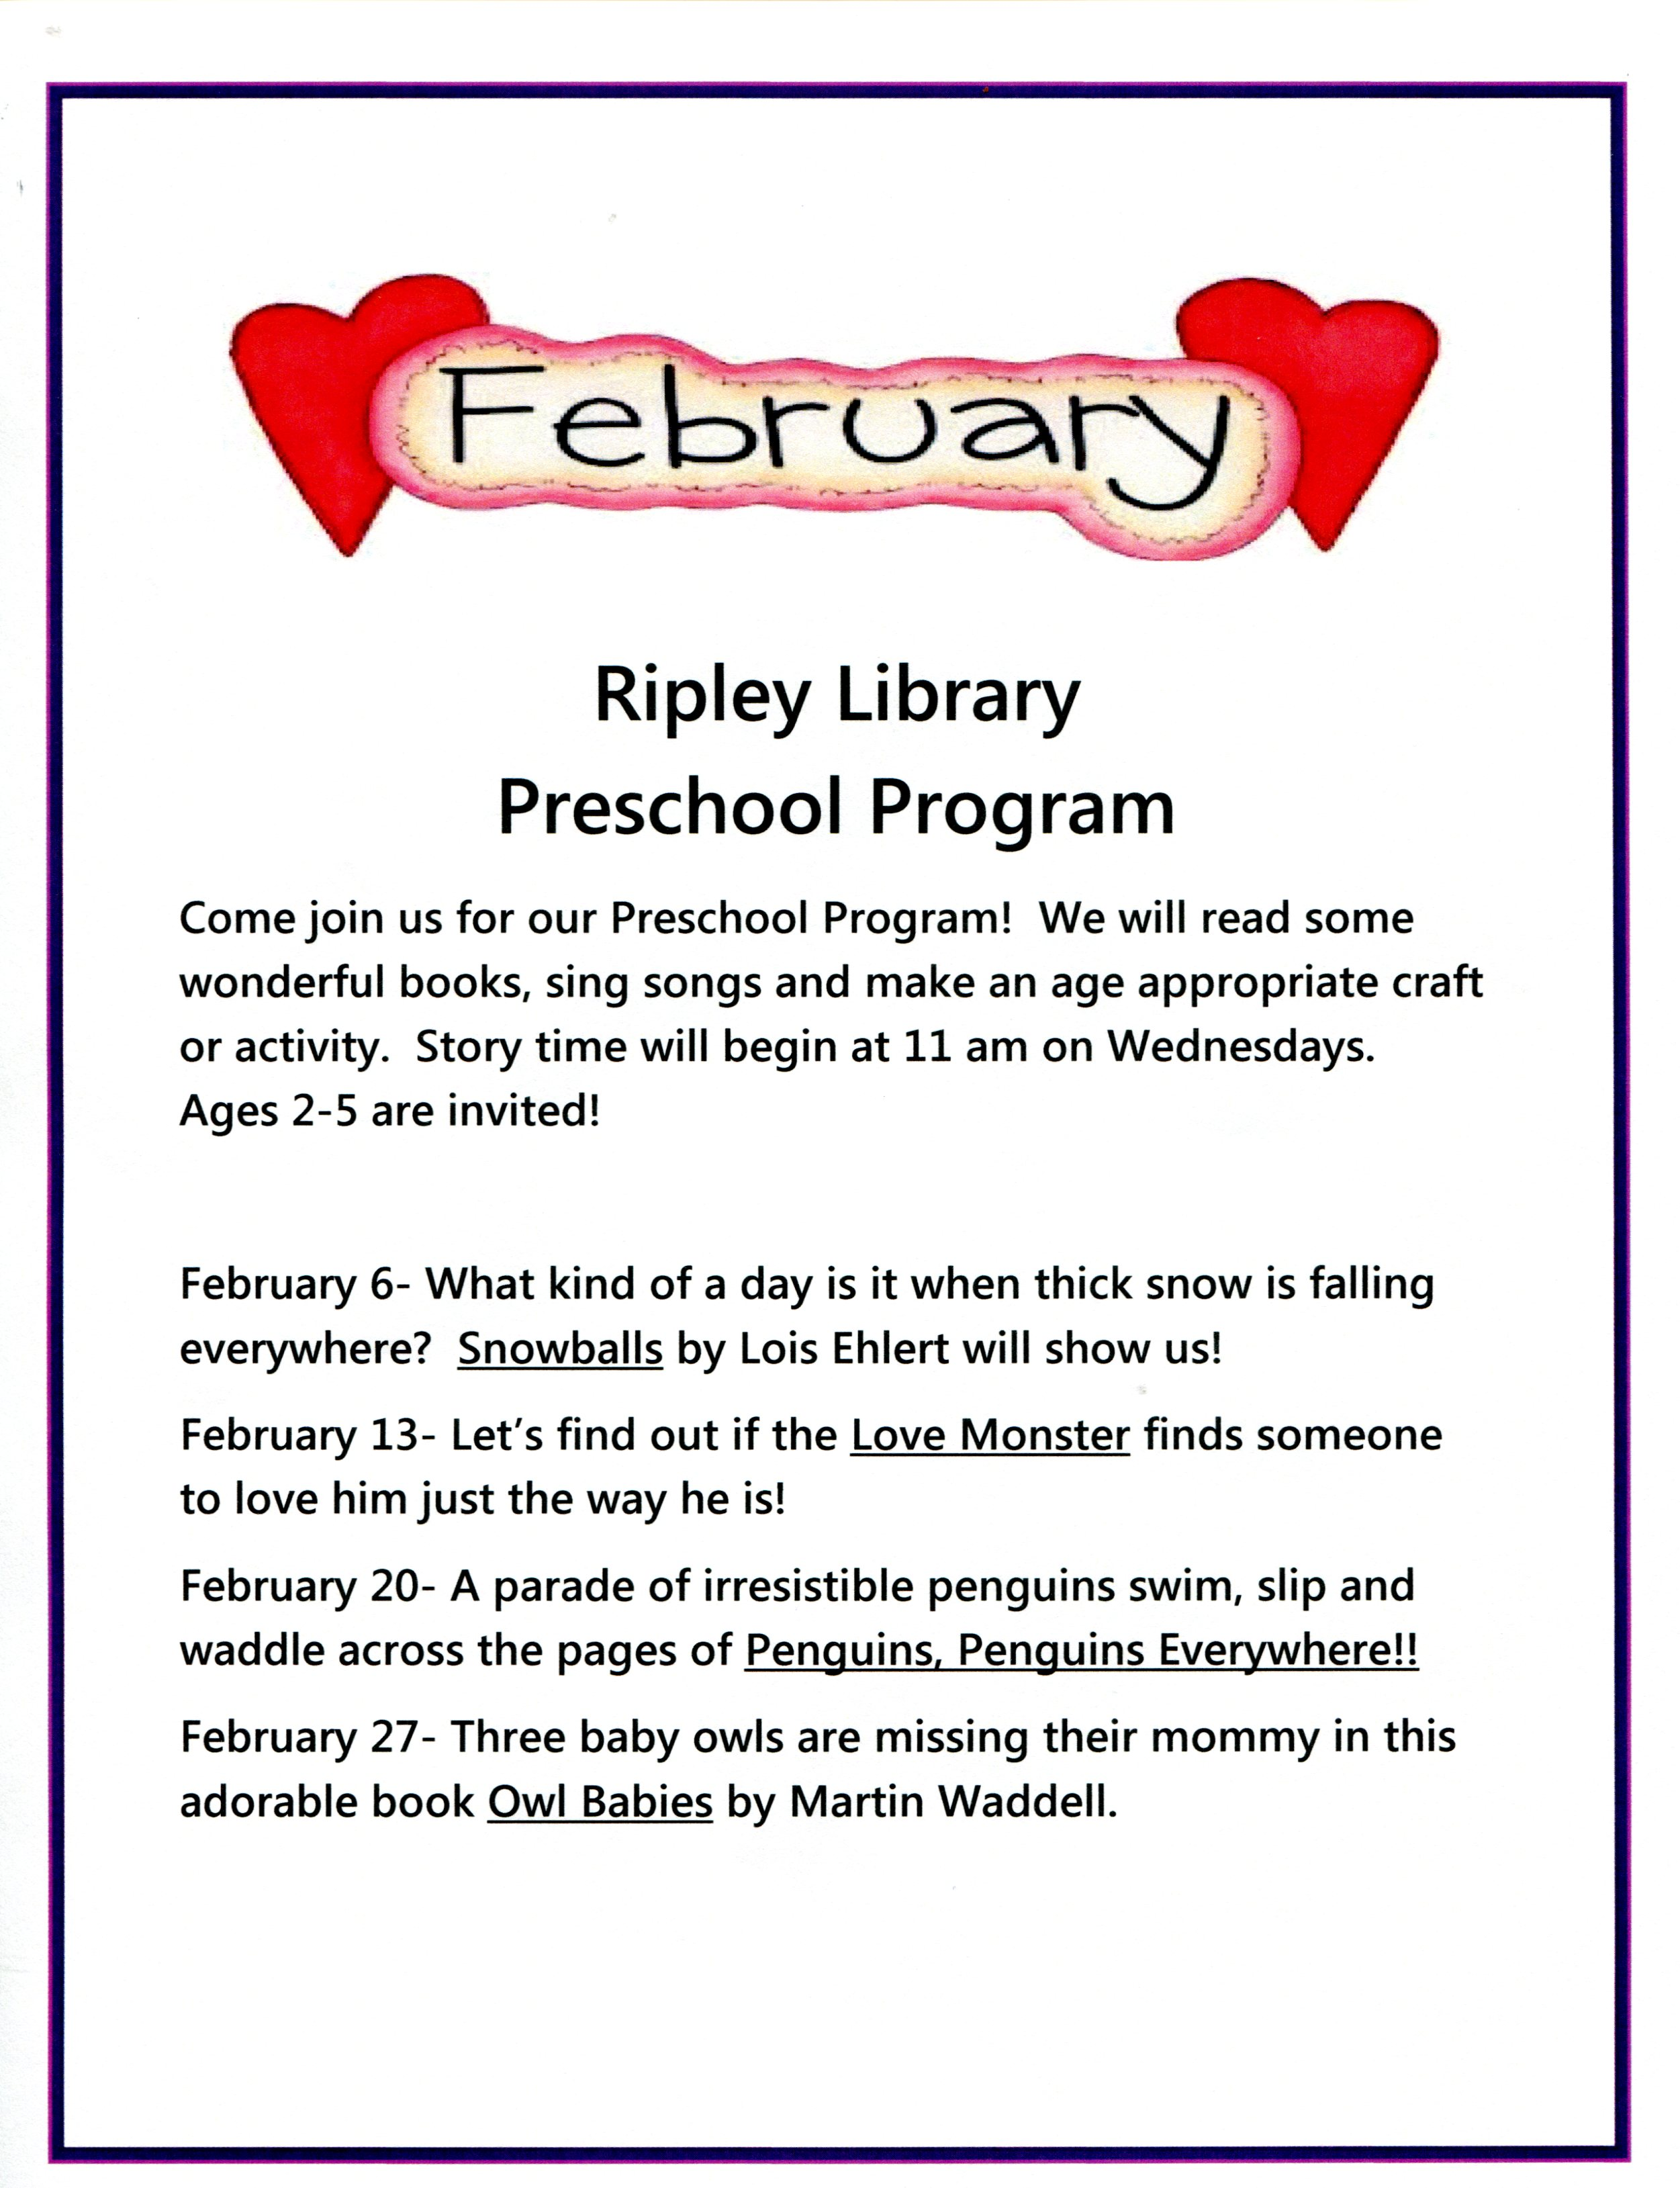 Ripley Preschool Program - 2 to 5 Year Olds